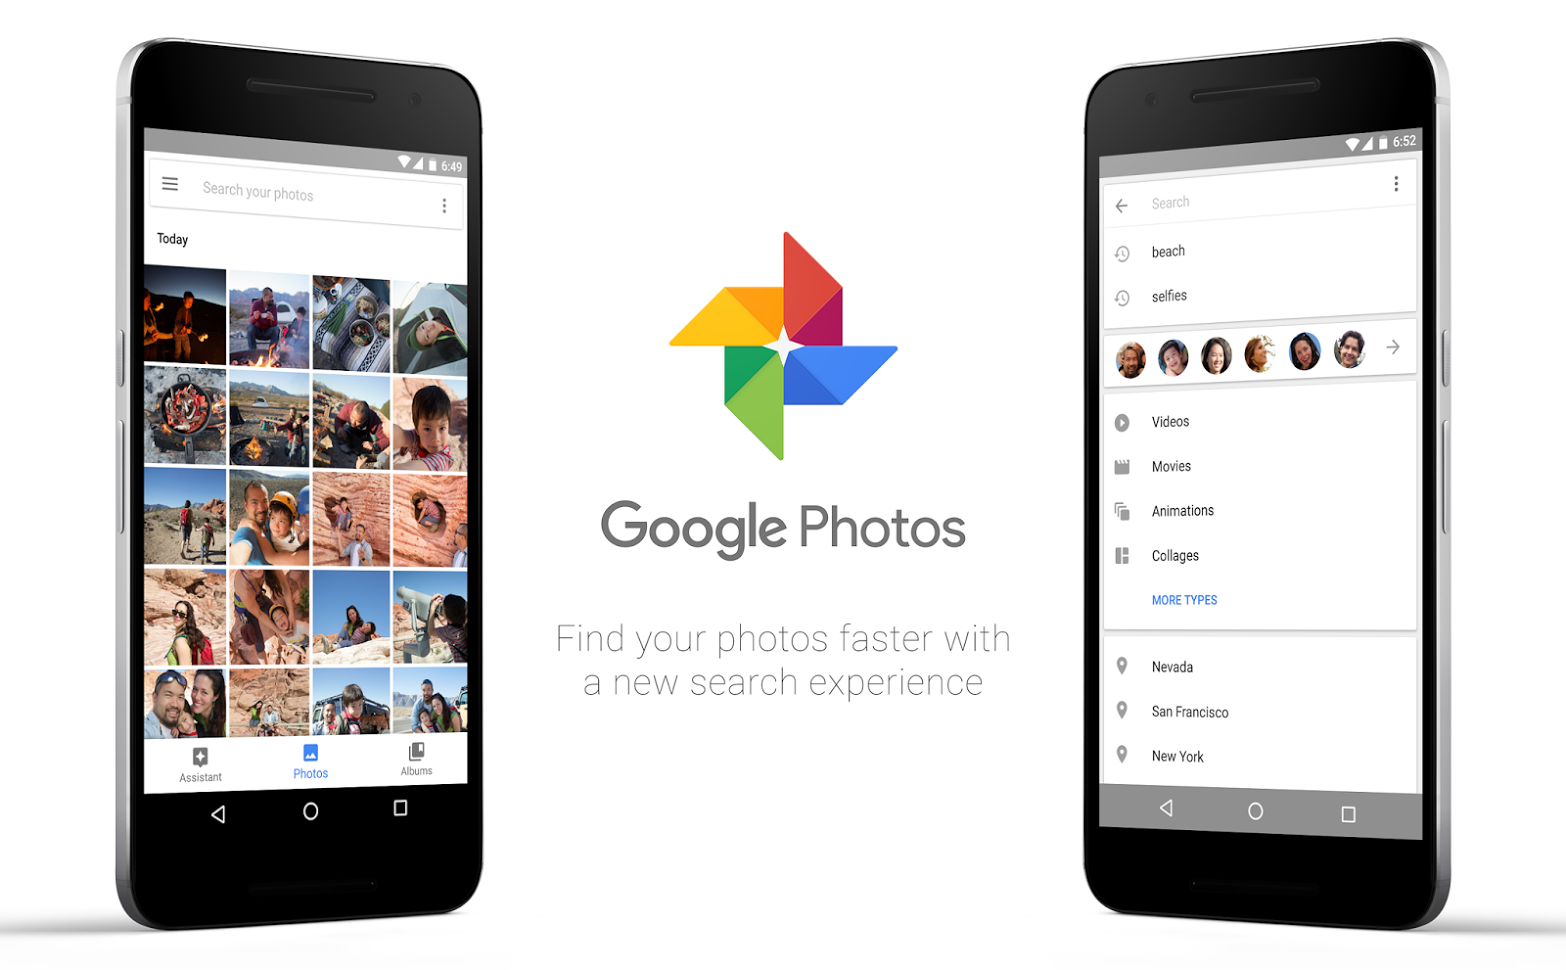 google-photos-update-brings-better-search-customizable-movies-image-cultofandroidcomwp-contentuploads201604n6p_photos_update-search-png